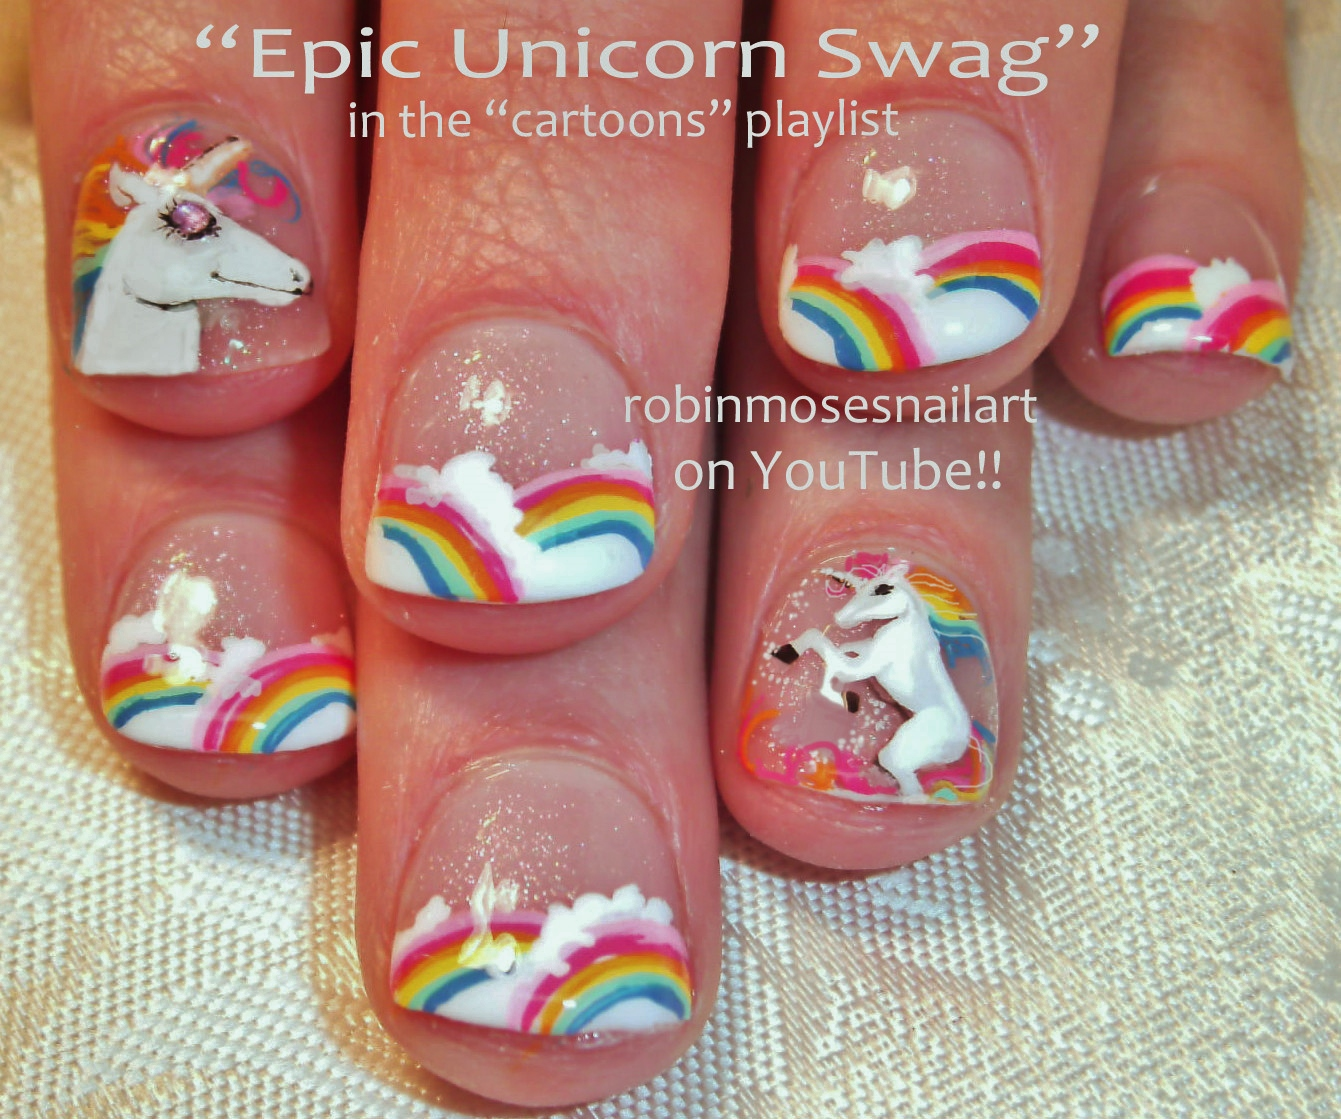 Robin moses nail art october 2015 cartoon nail art playlist disney nails logos for nails animal nails how to paint faces princess nails prinsesfo Gallery